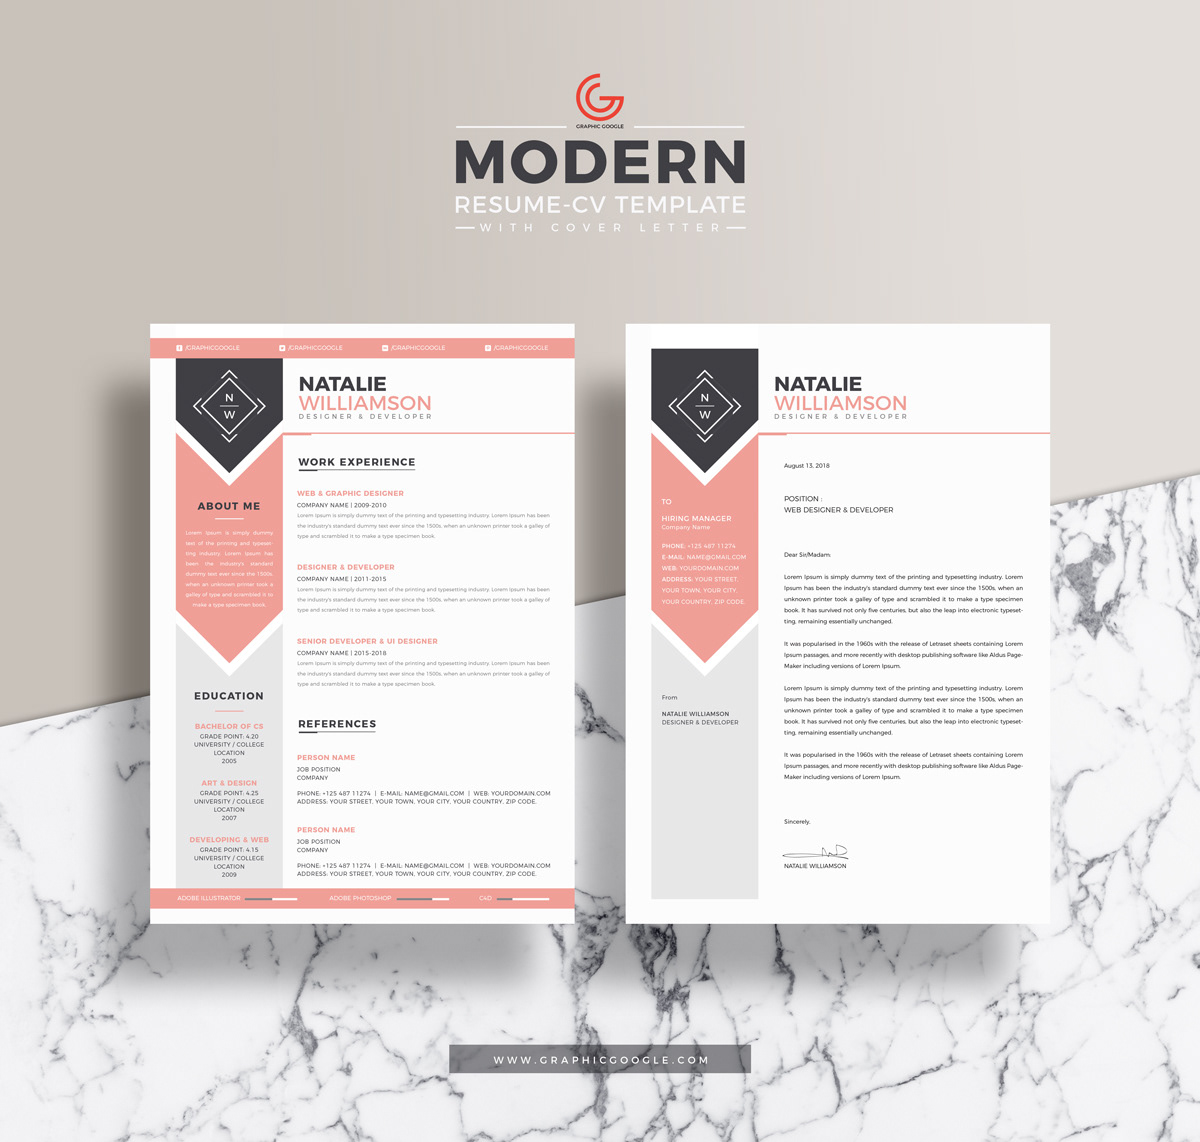 Free Designer & Developer Resume with Cover Letter on Behance